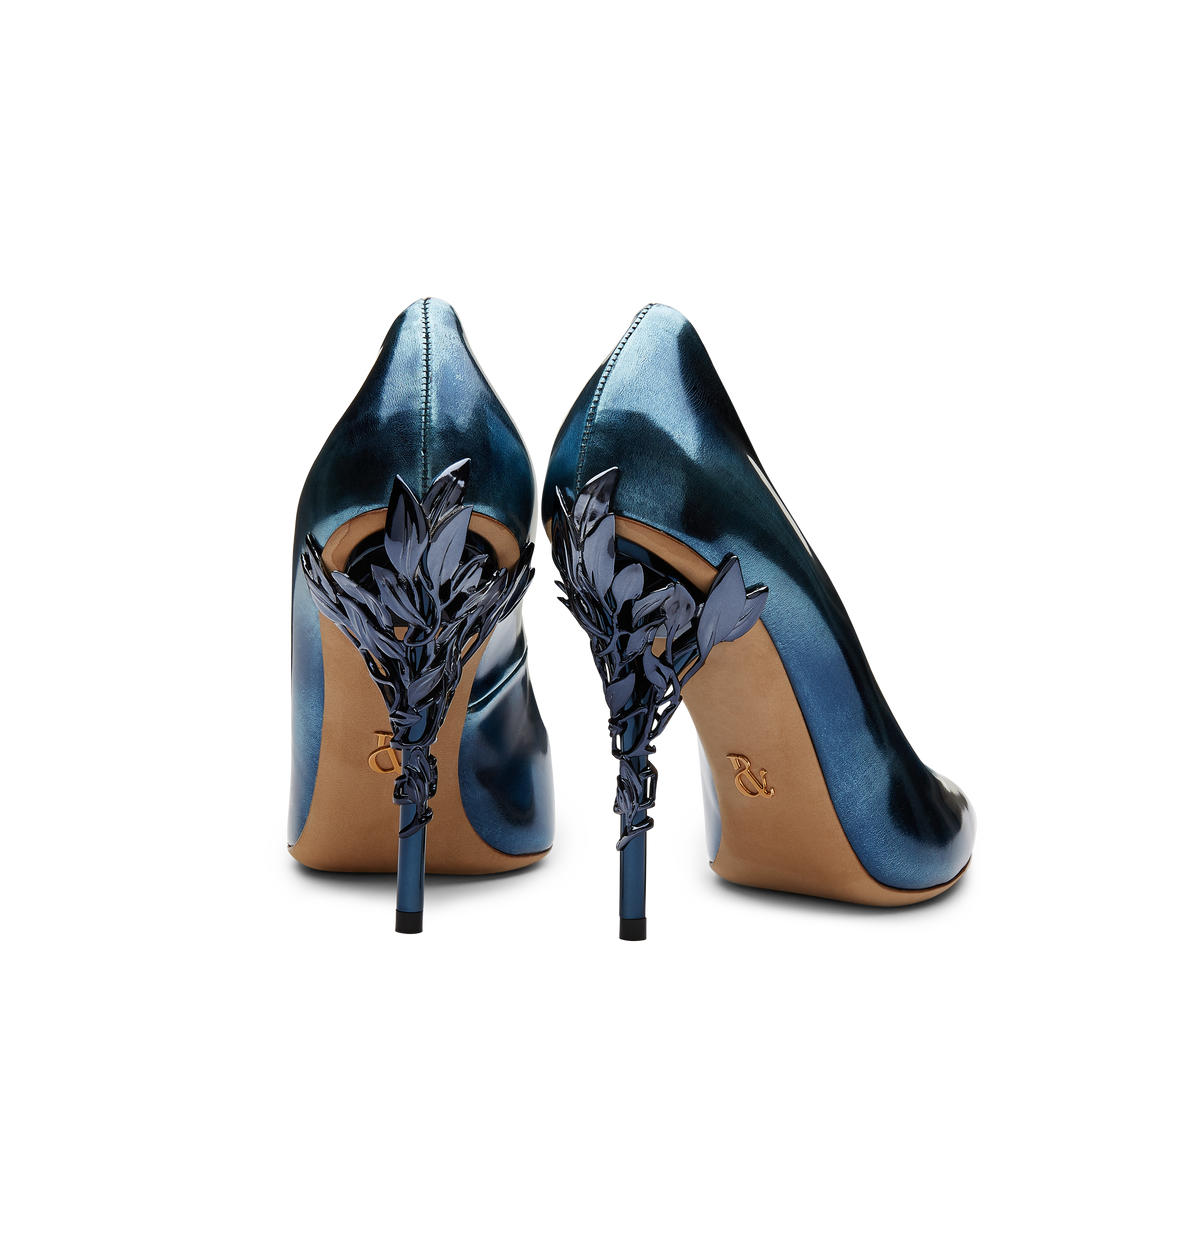 Petrol Blue Metallic Leather Eden Heels with Blue Leaves